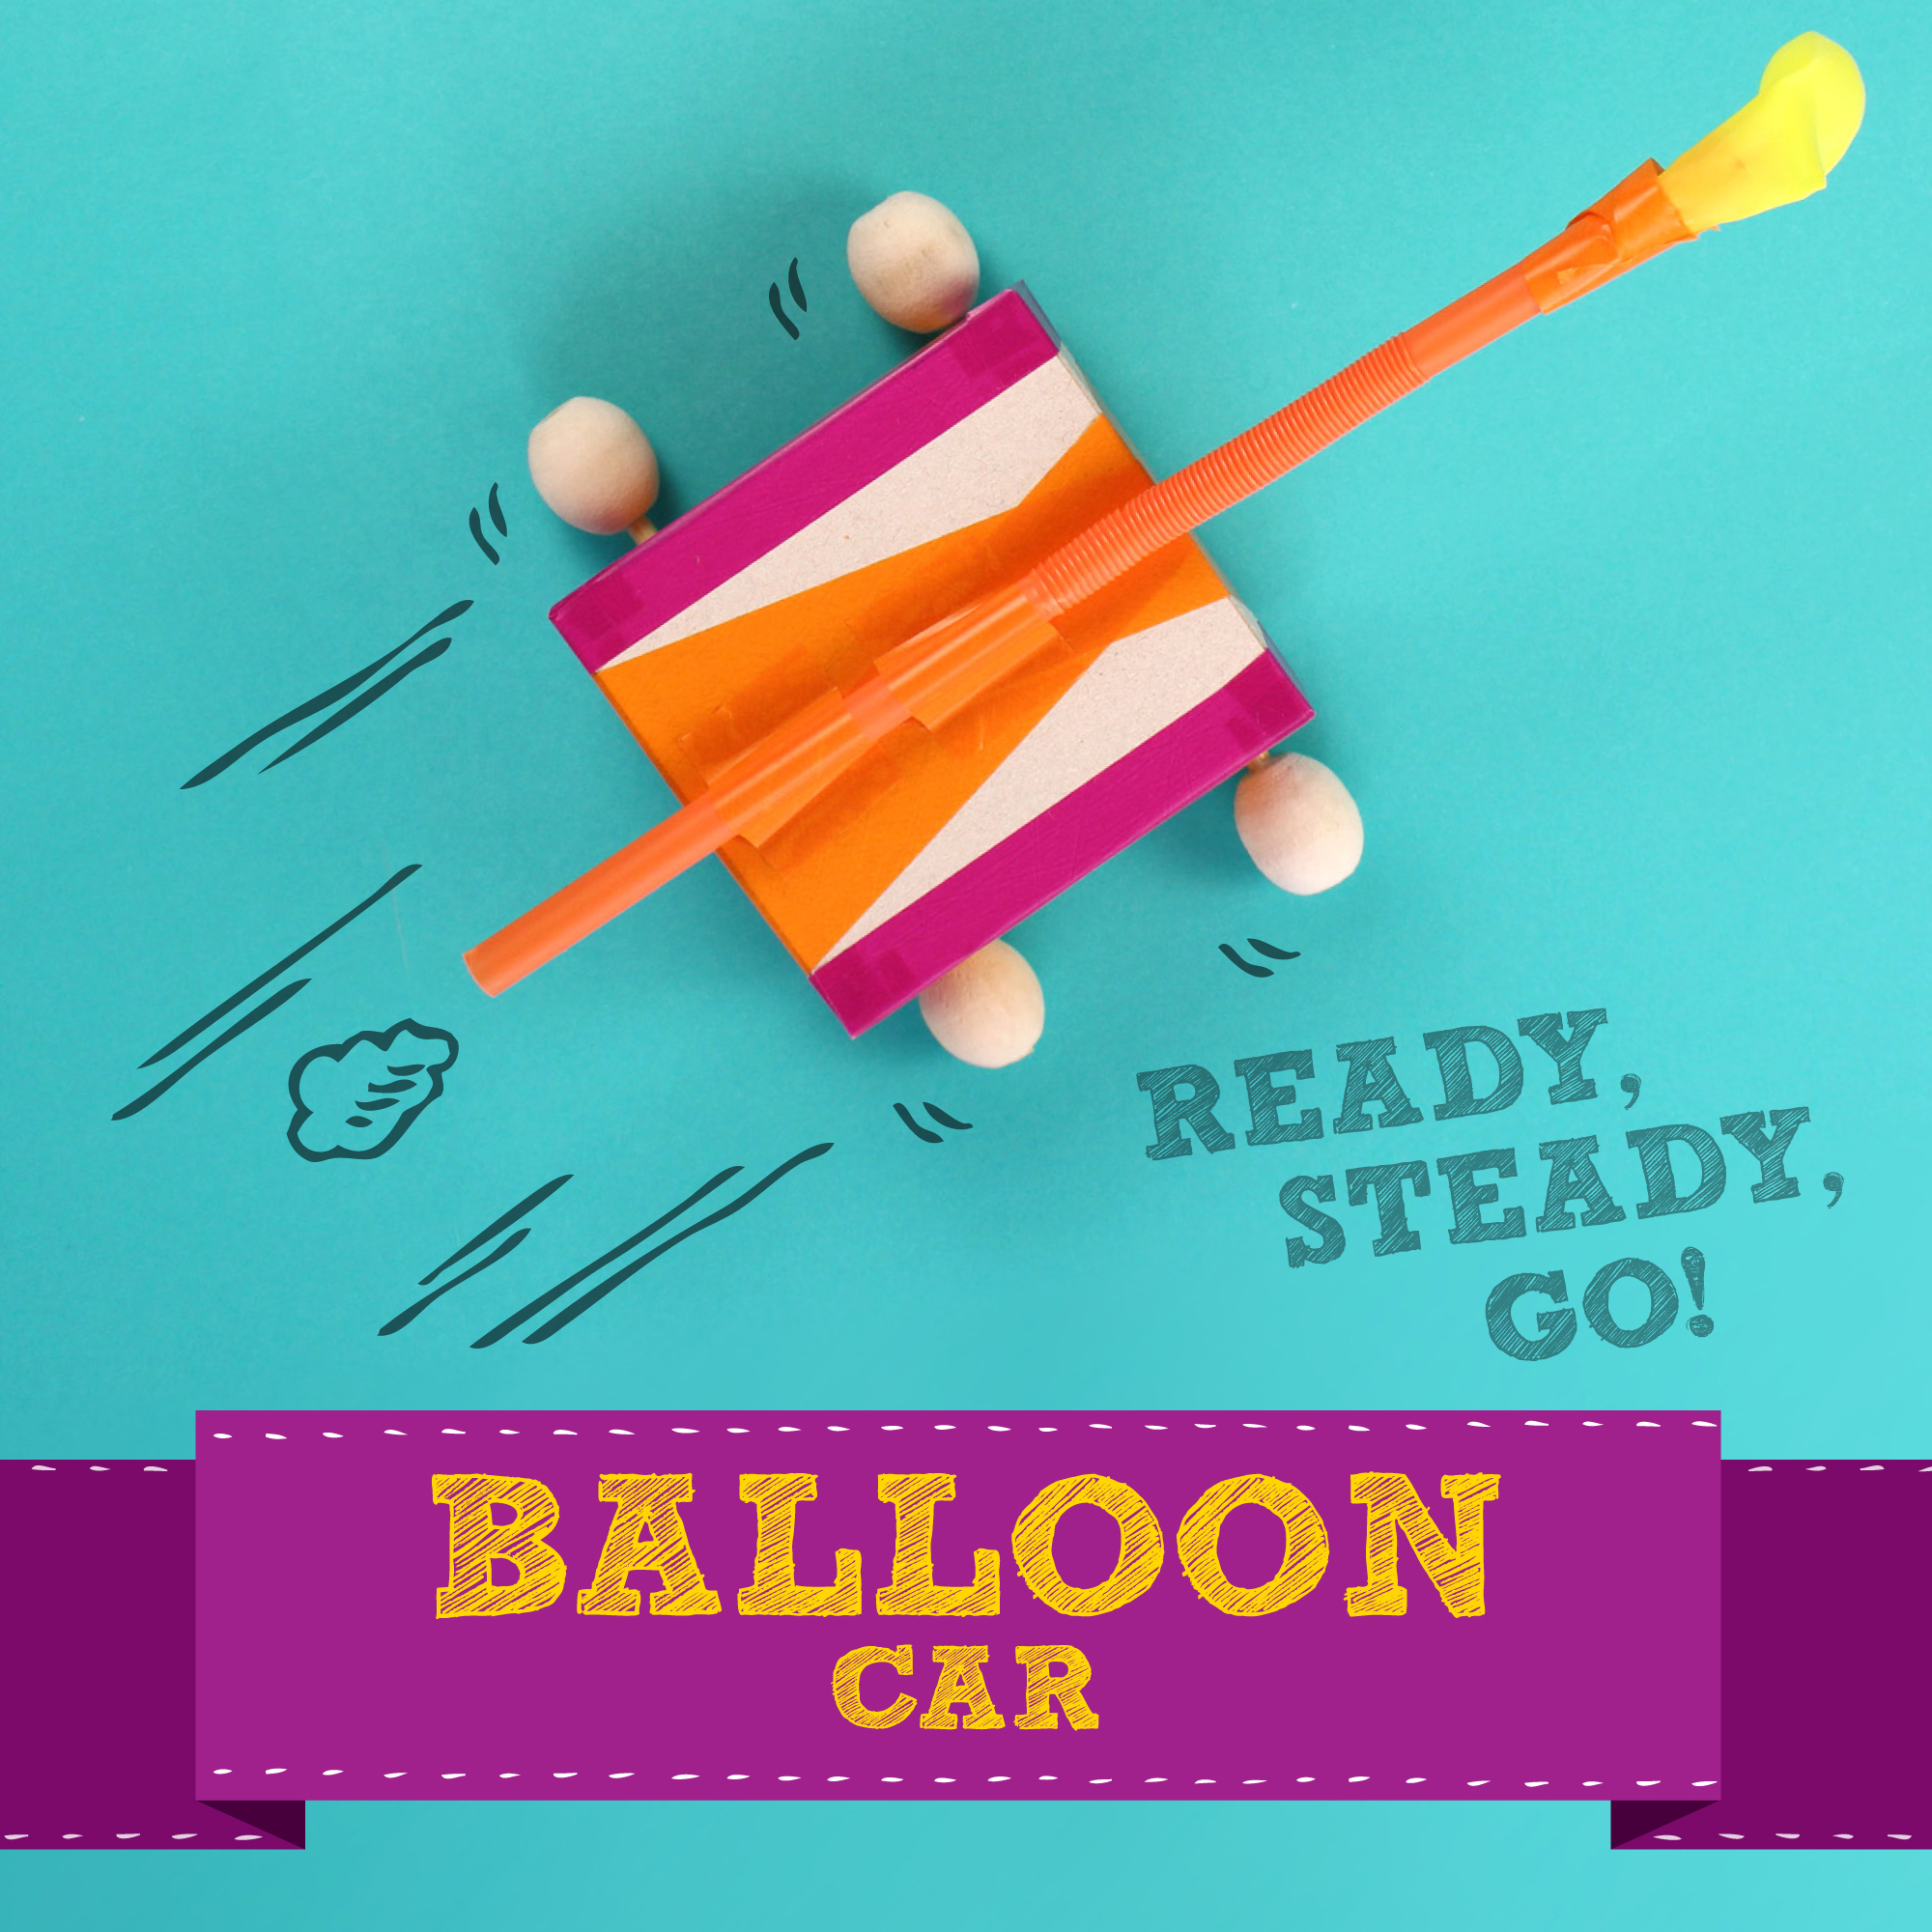 How To Make A Balloon Car